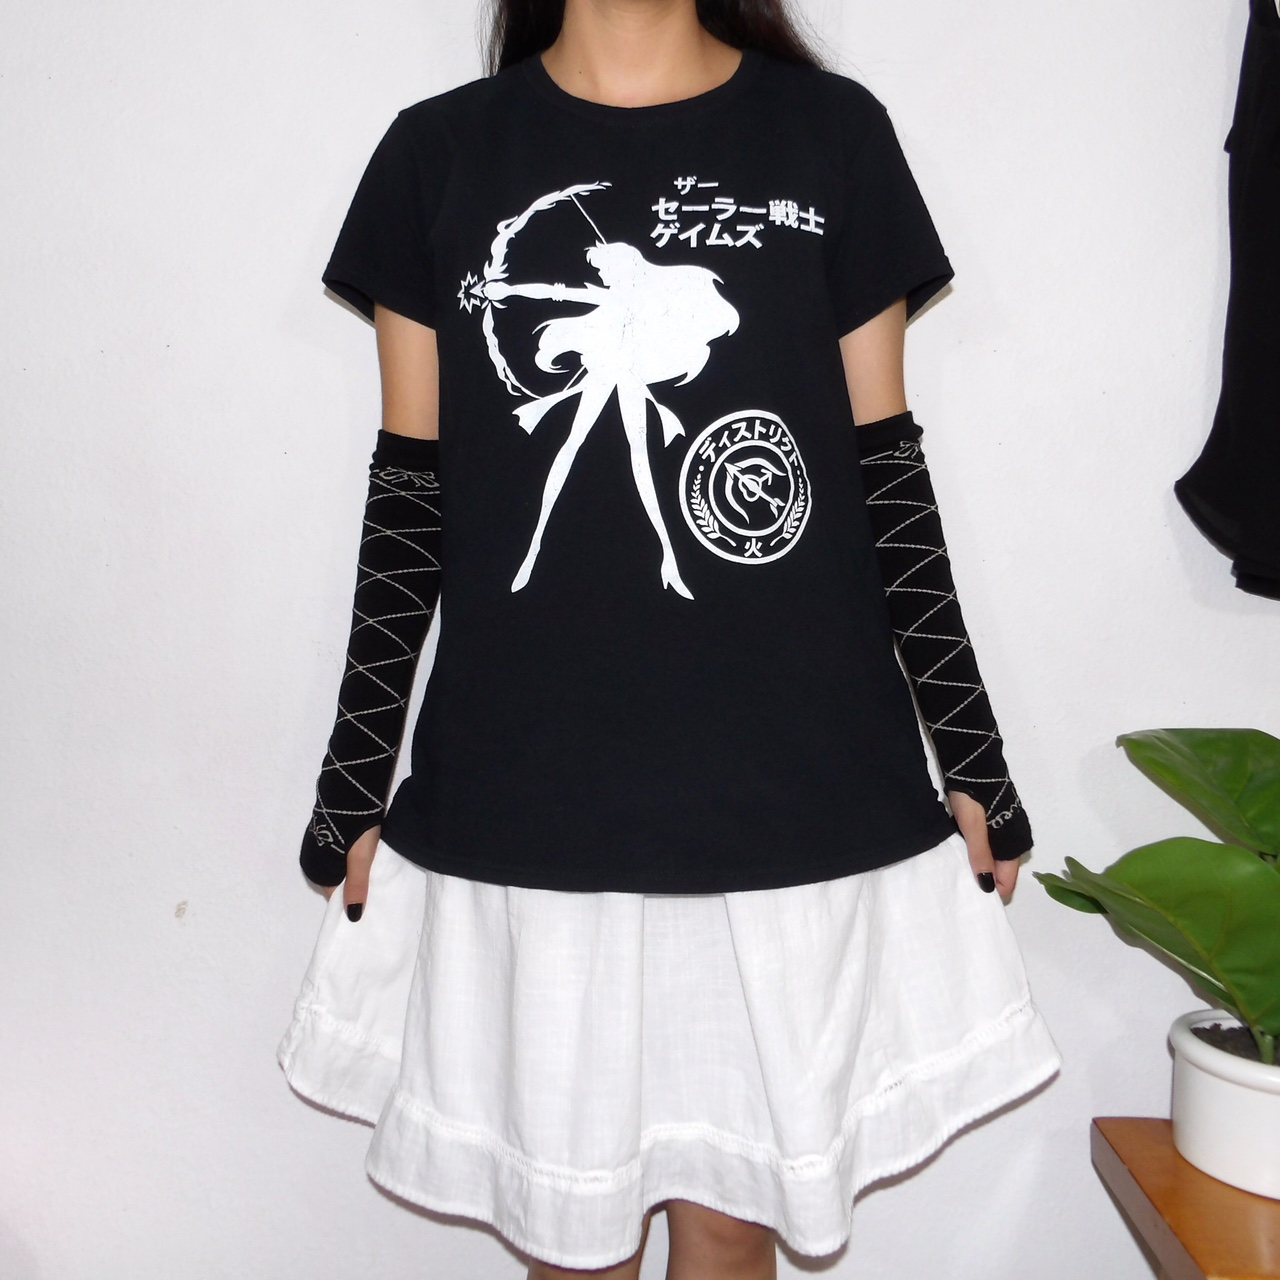 Product Image 1 - Sailor Mars t-shirt 🔥  black and